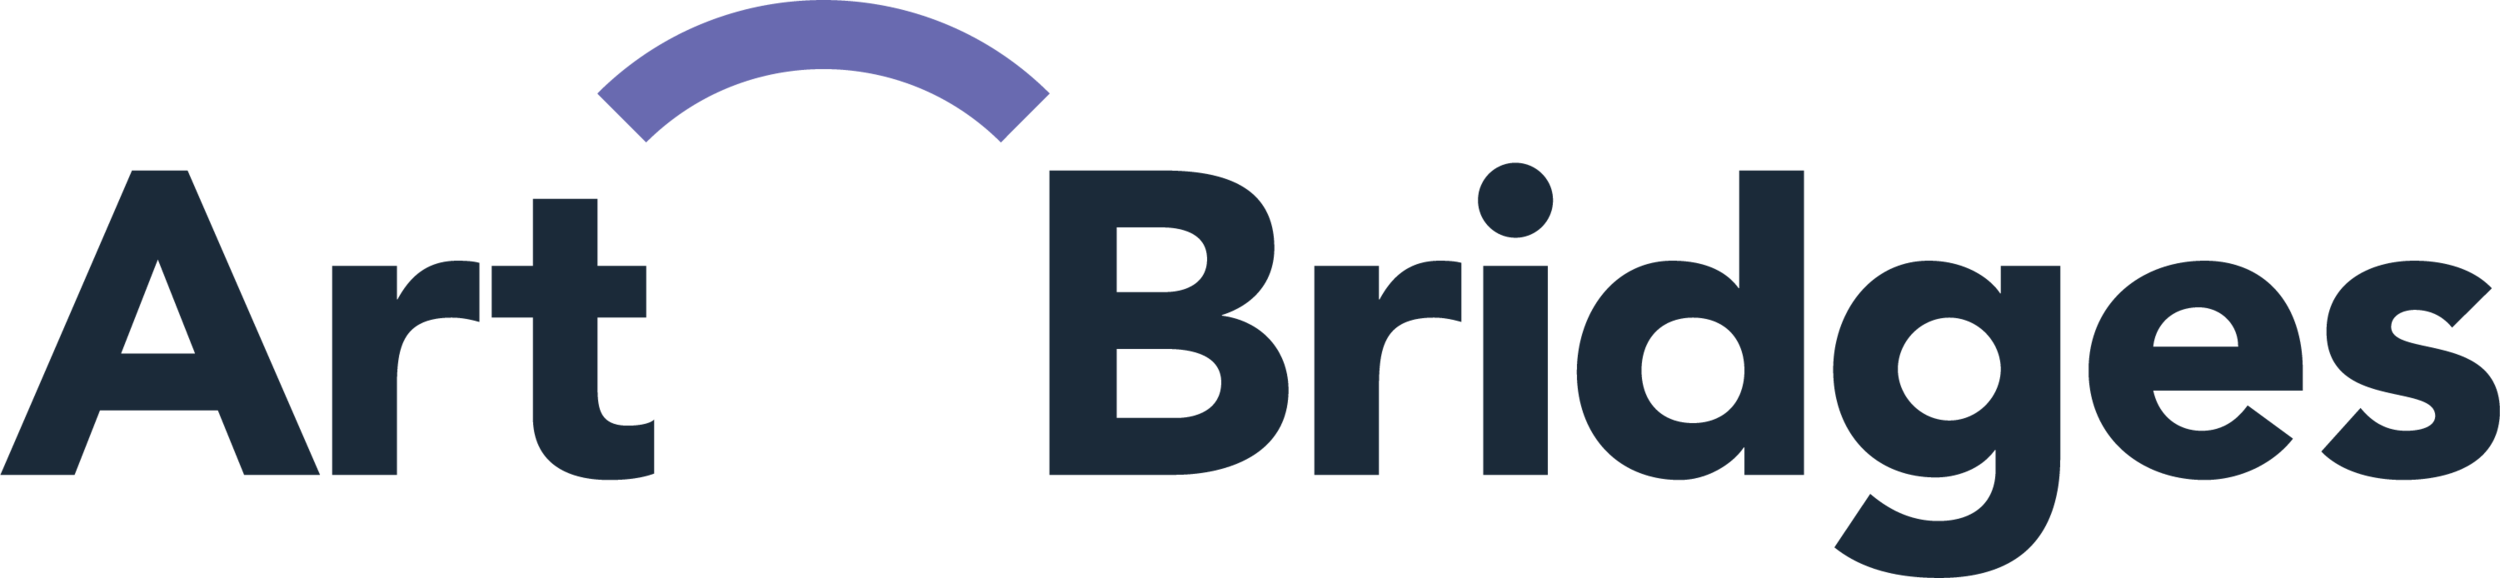 Support provided by Art Bridges.